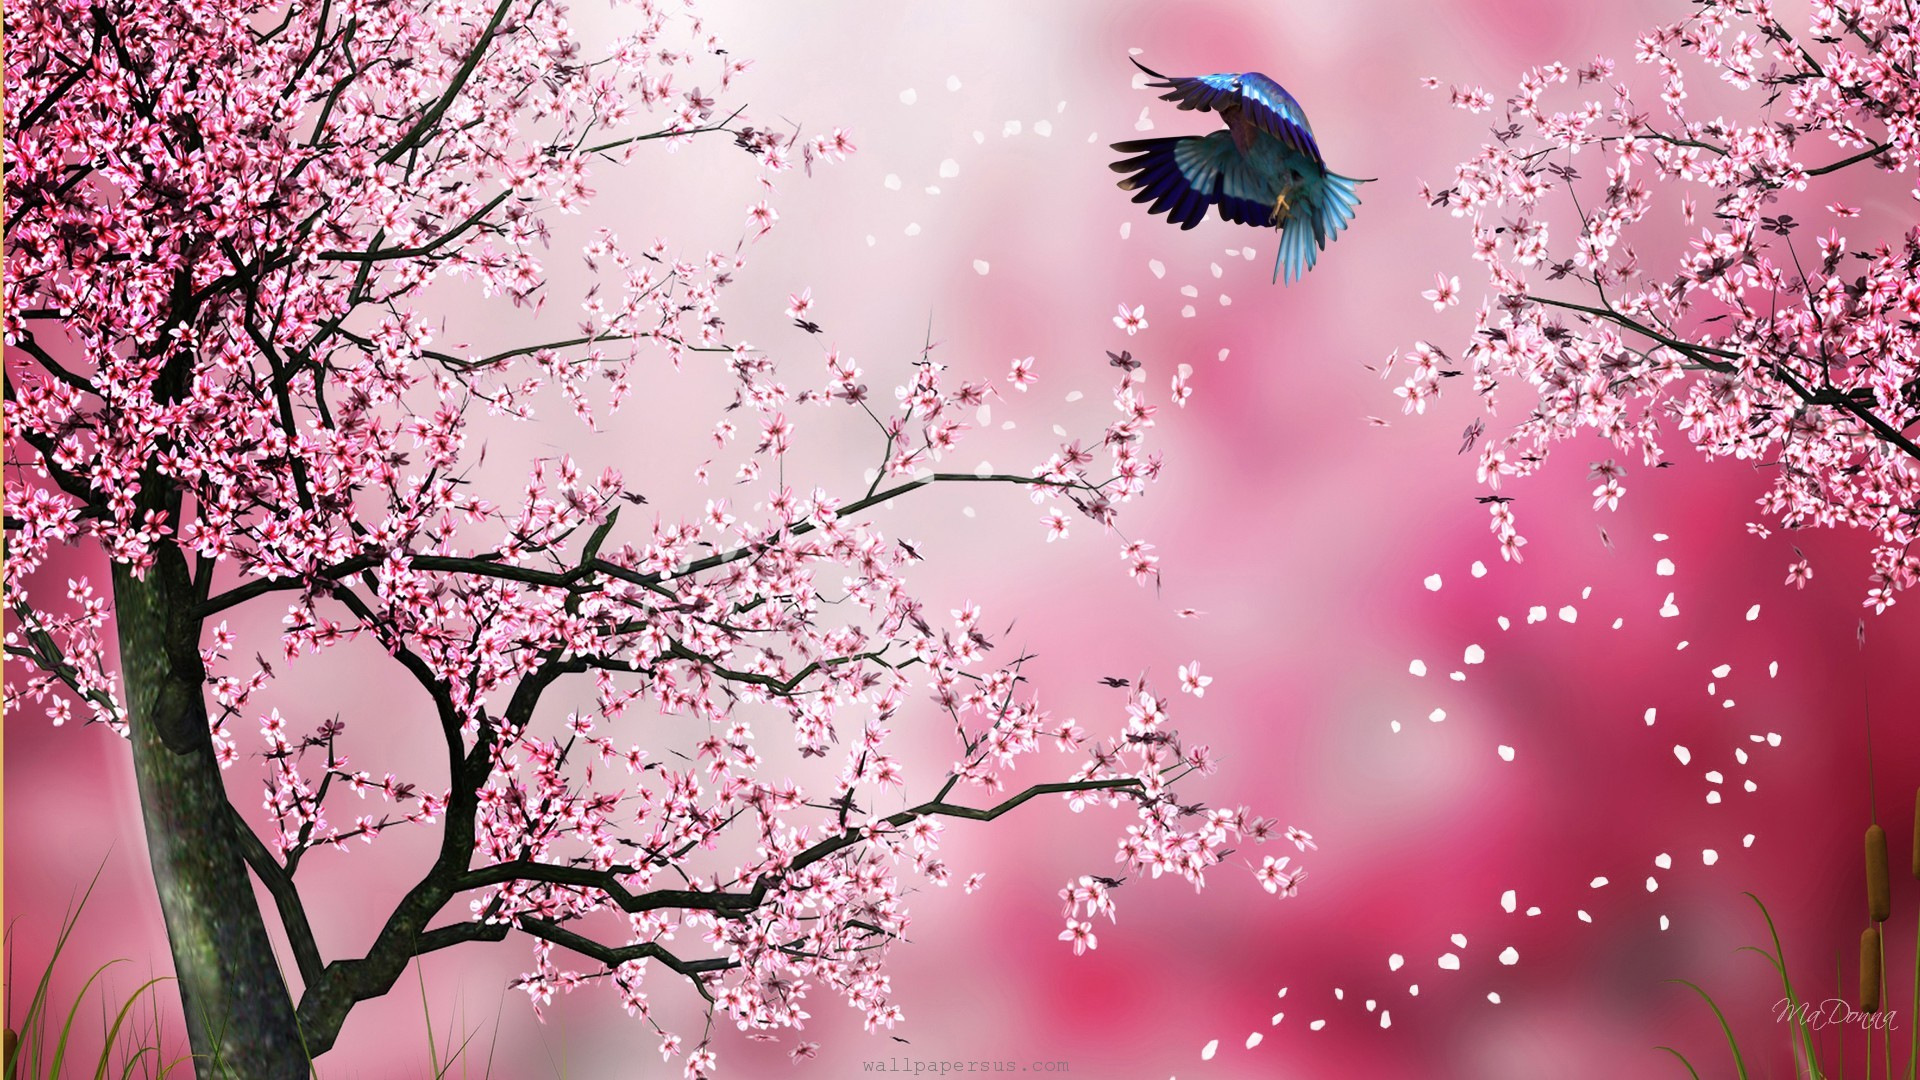 sakura-pink-abstract-blossoms-cherry-firefox-persona-flowers-japanese-